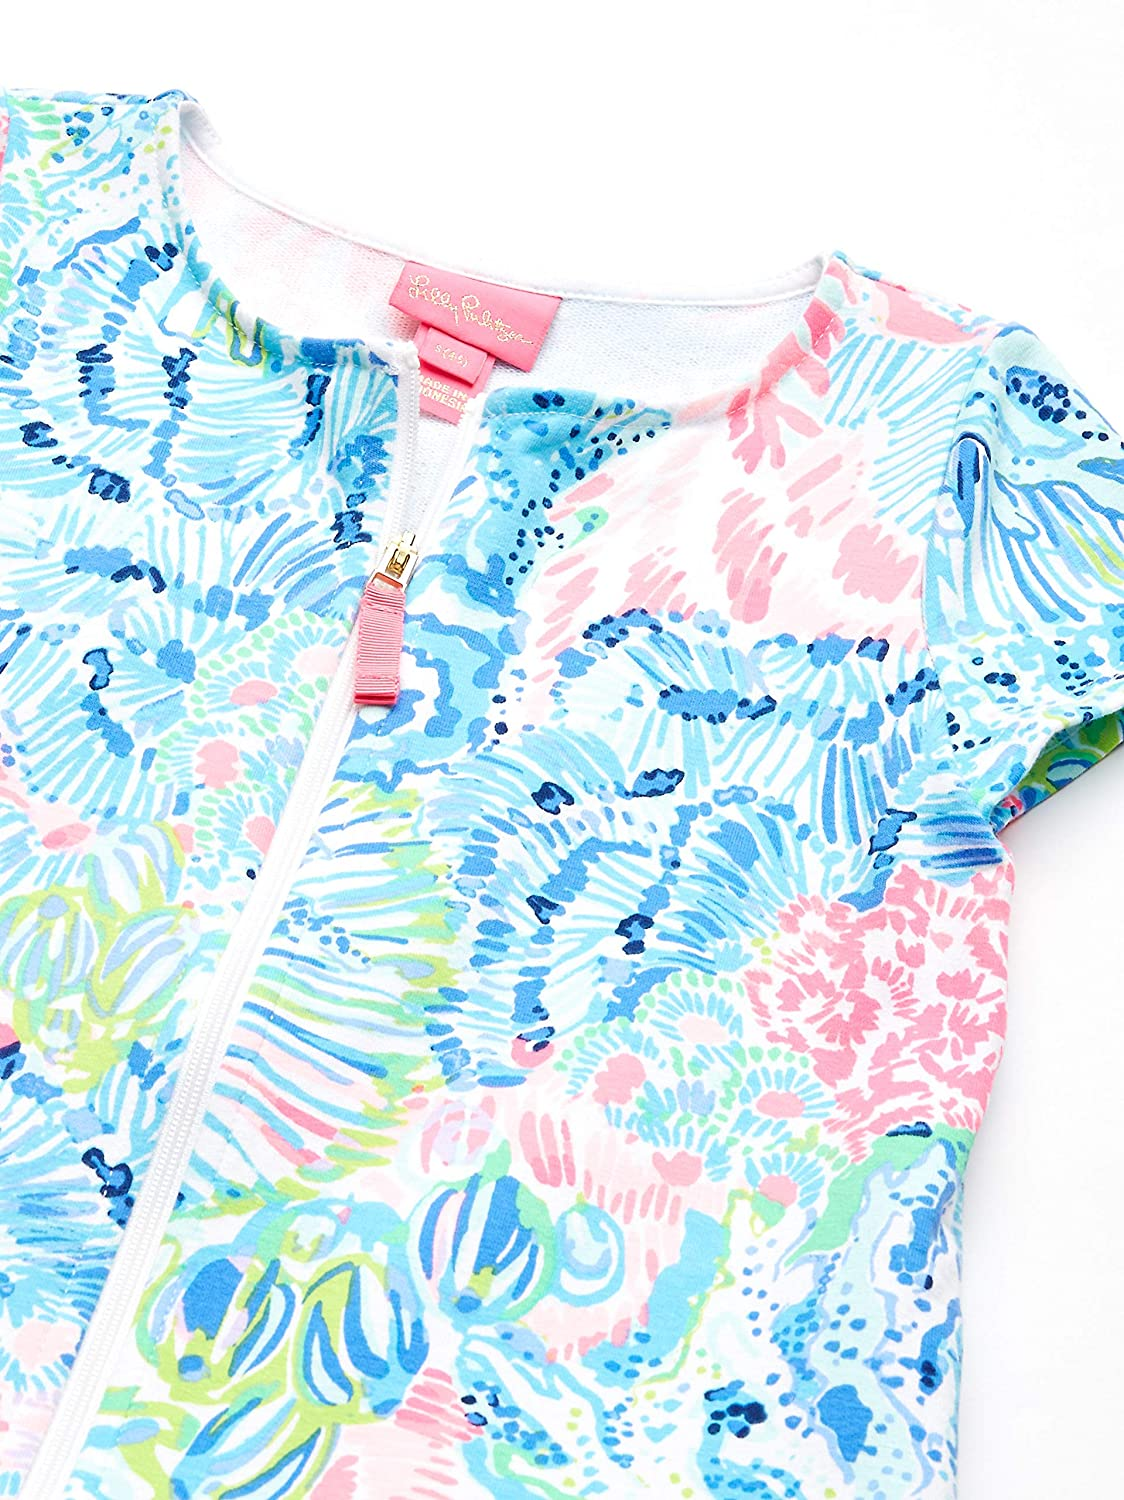 Lilly Pulitzer It was All a Dream Ivy Girls Swim Cover Up